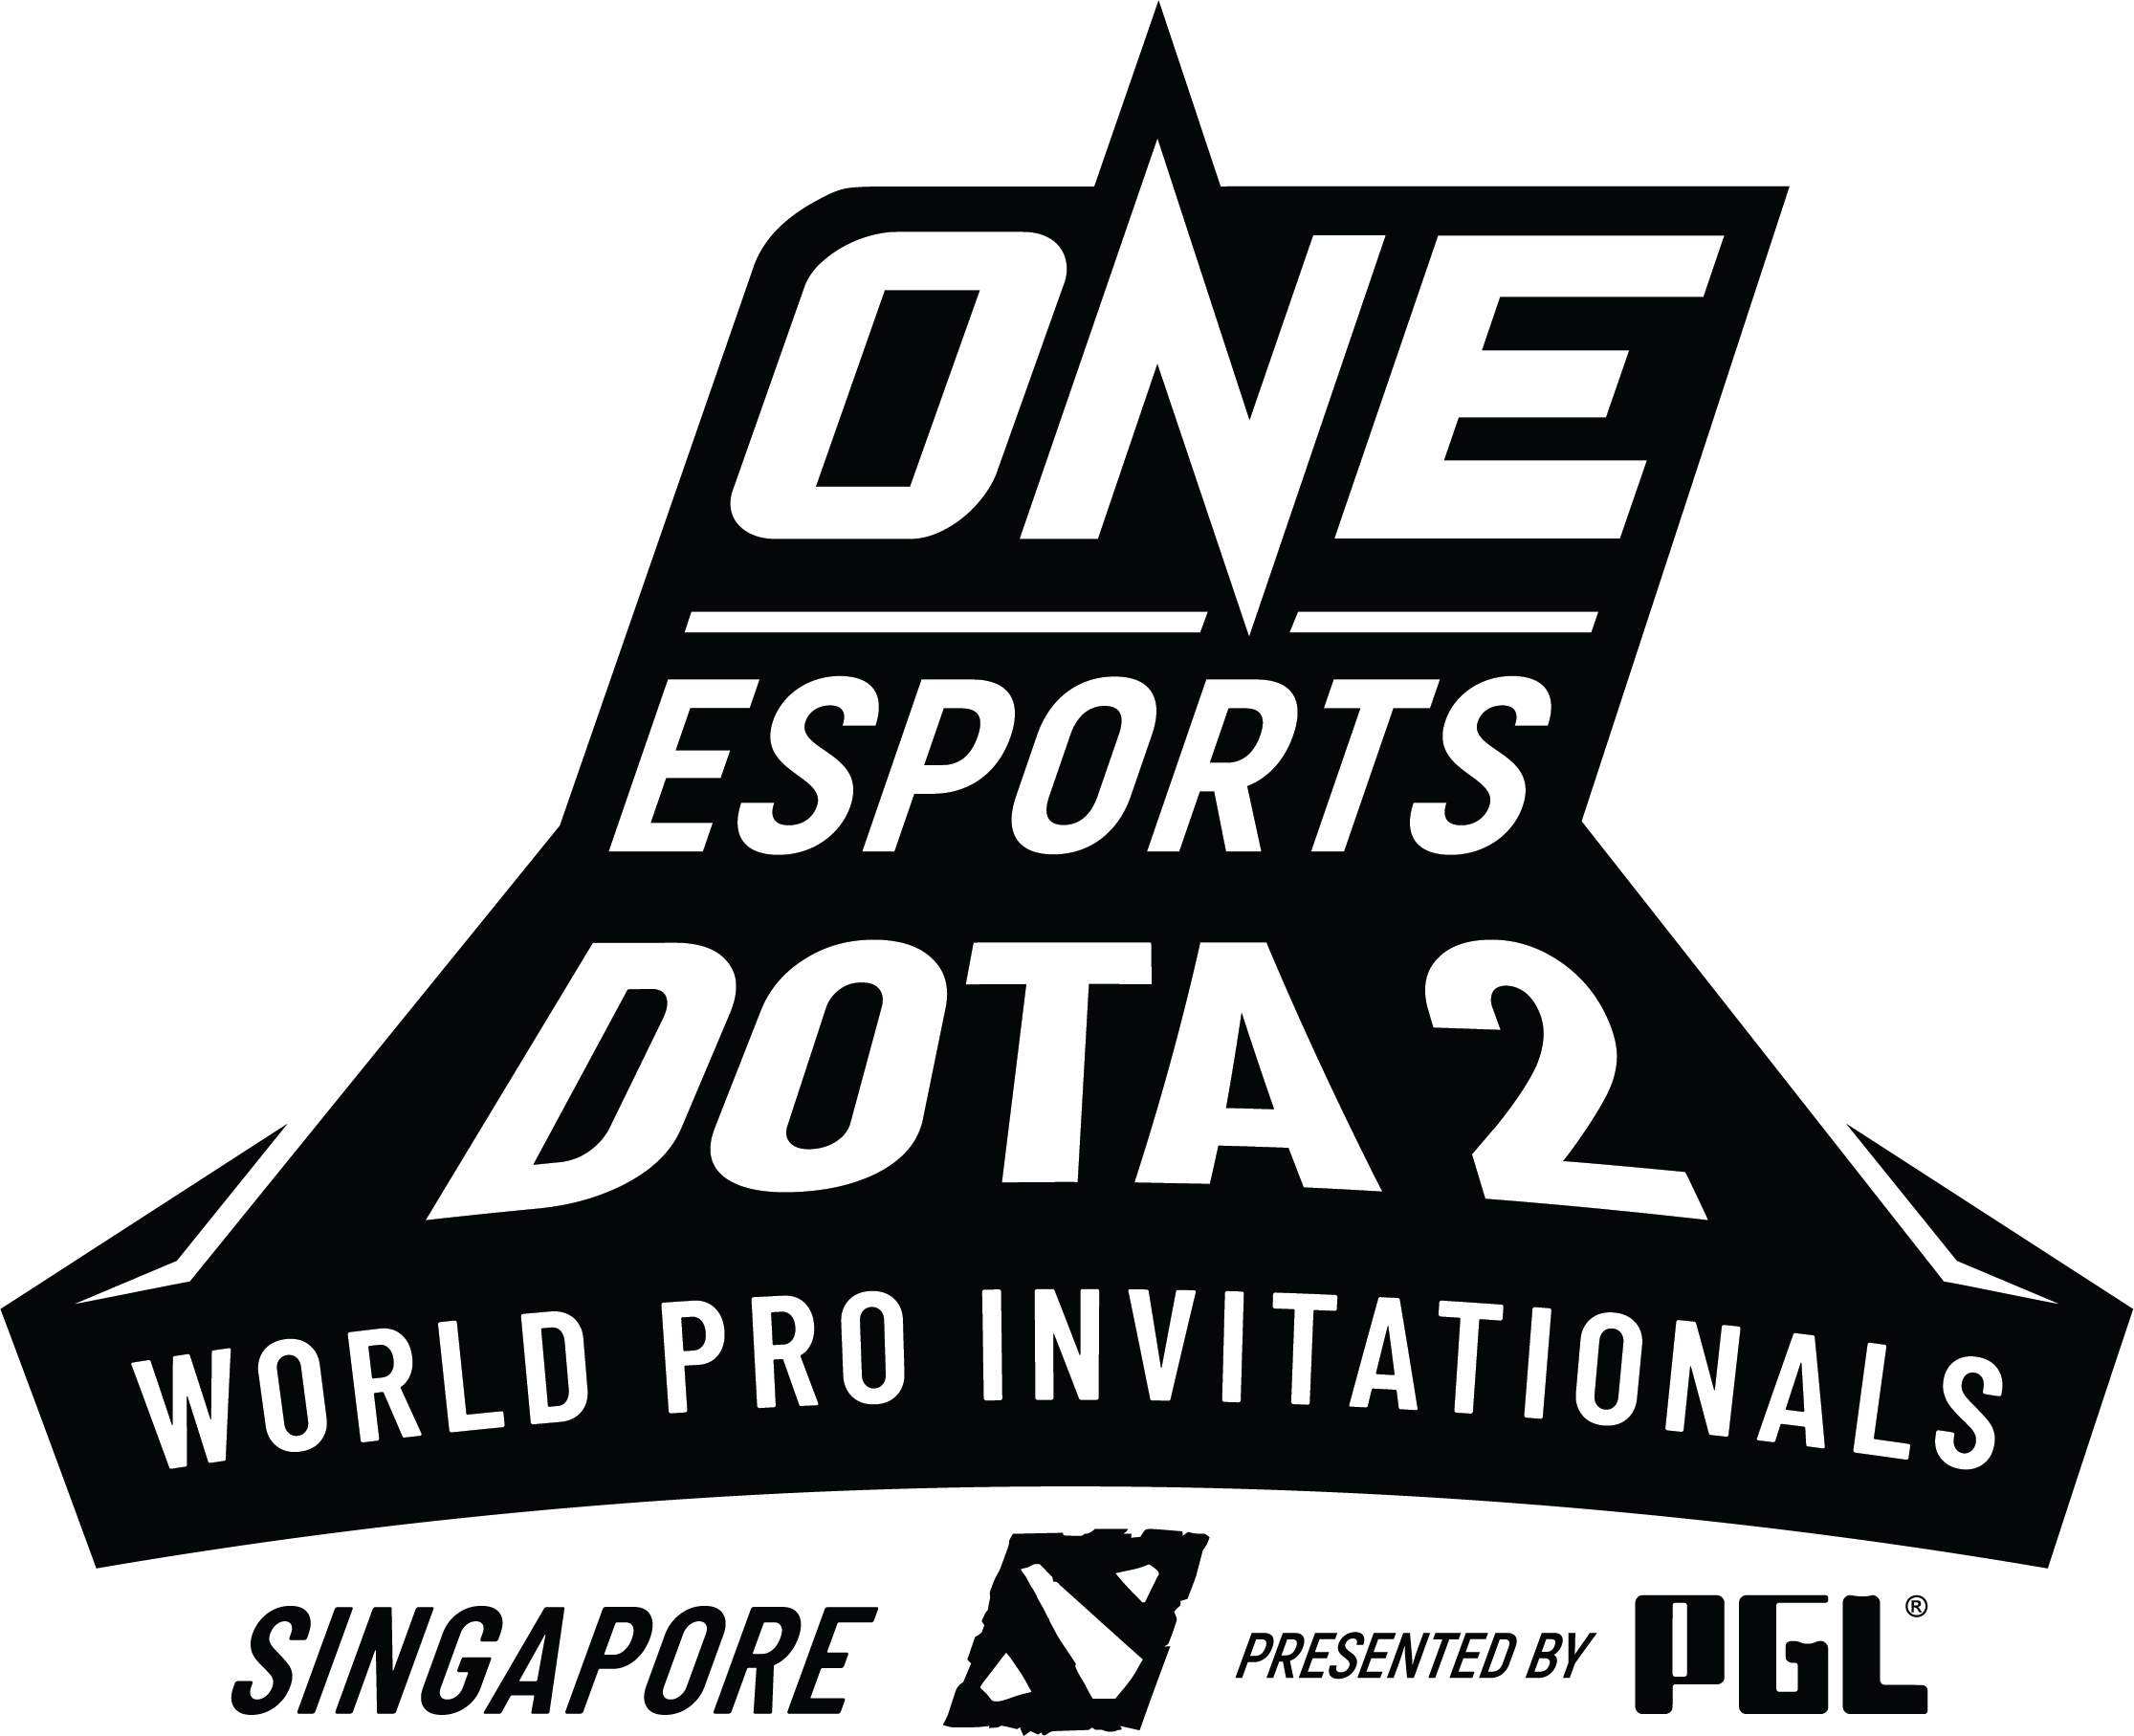 World Pro Invitational ONE Esports Dota 2 Singapore Tournament